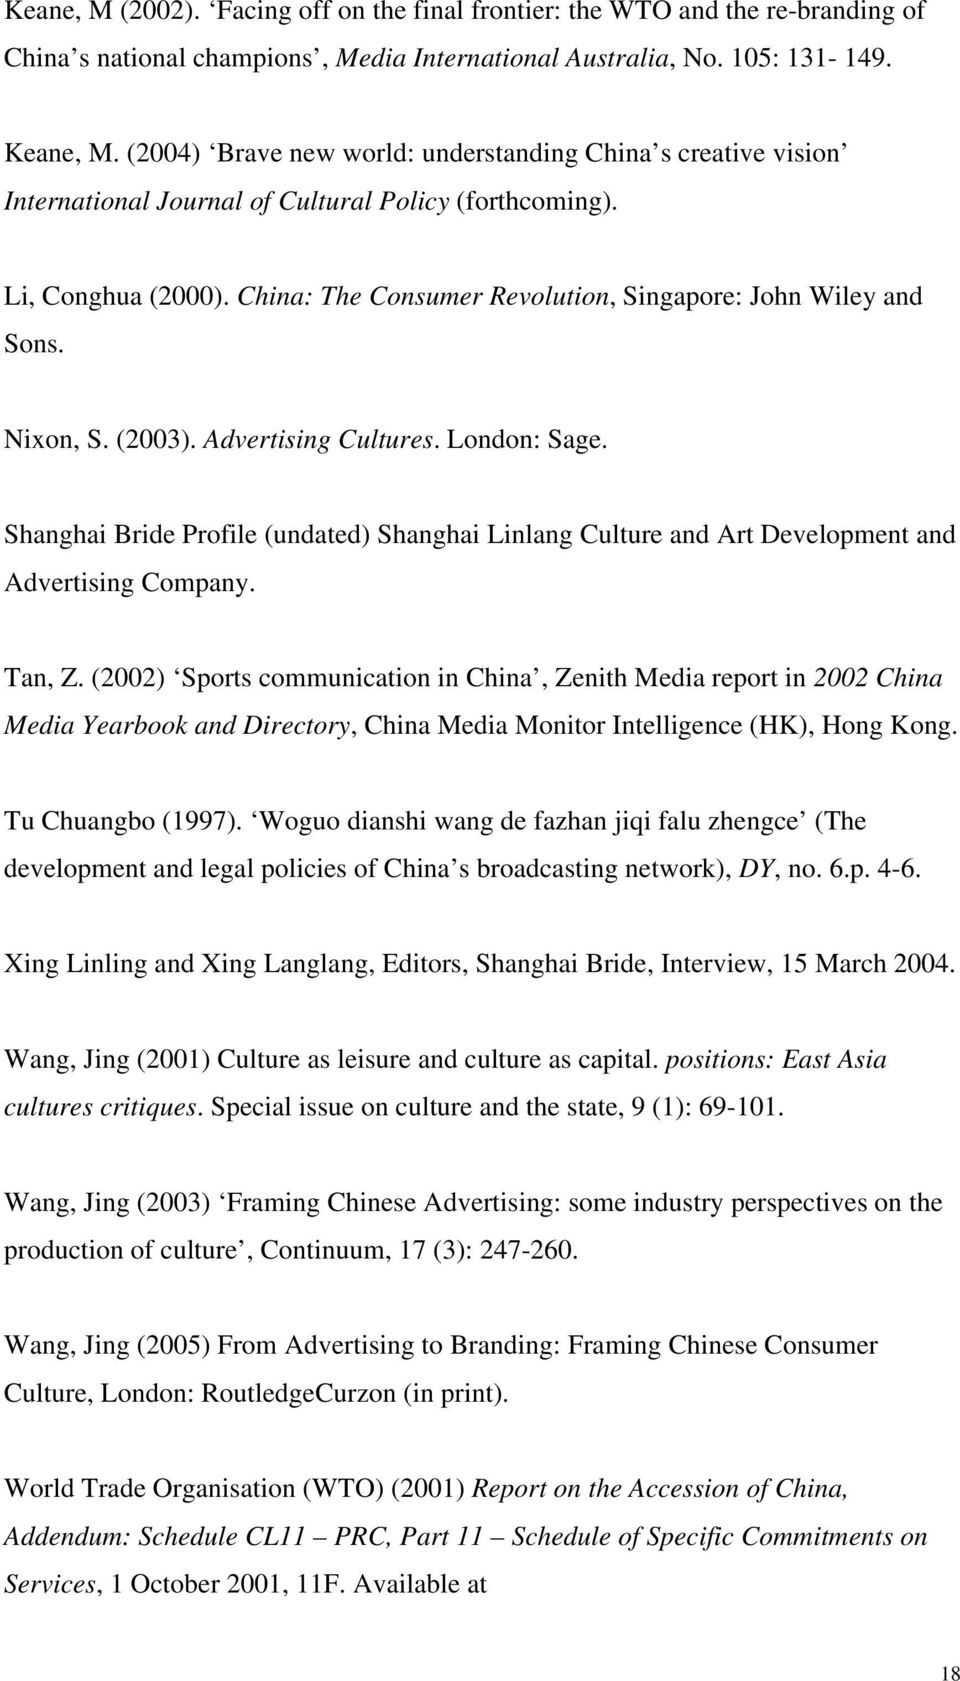 Literature review on trade liberalisation and china's employment?